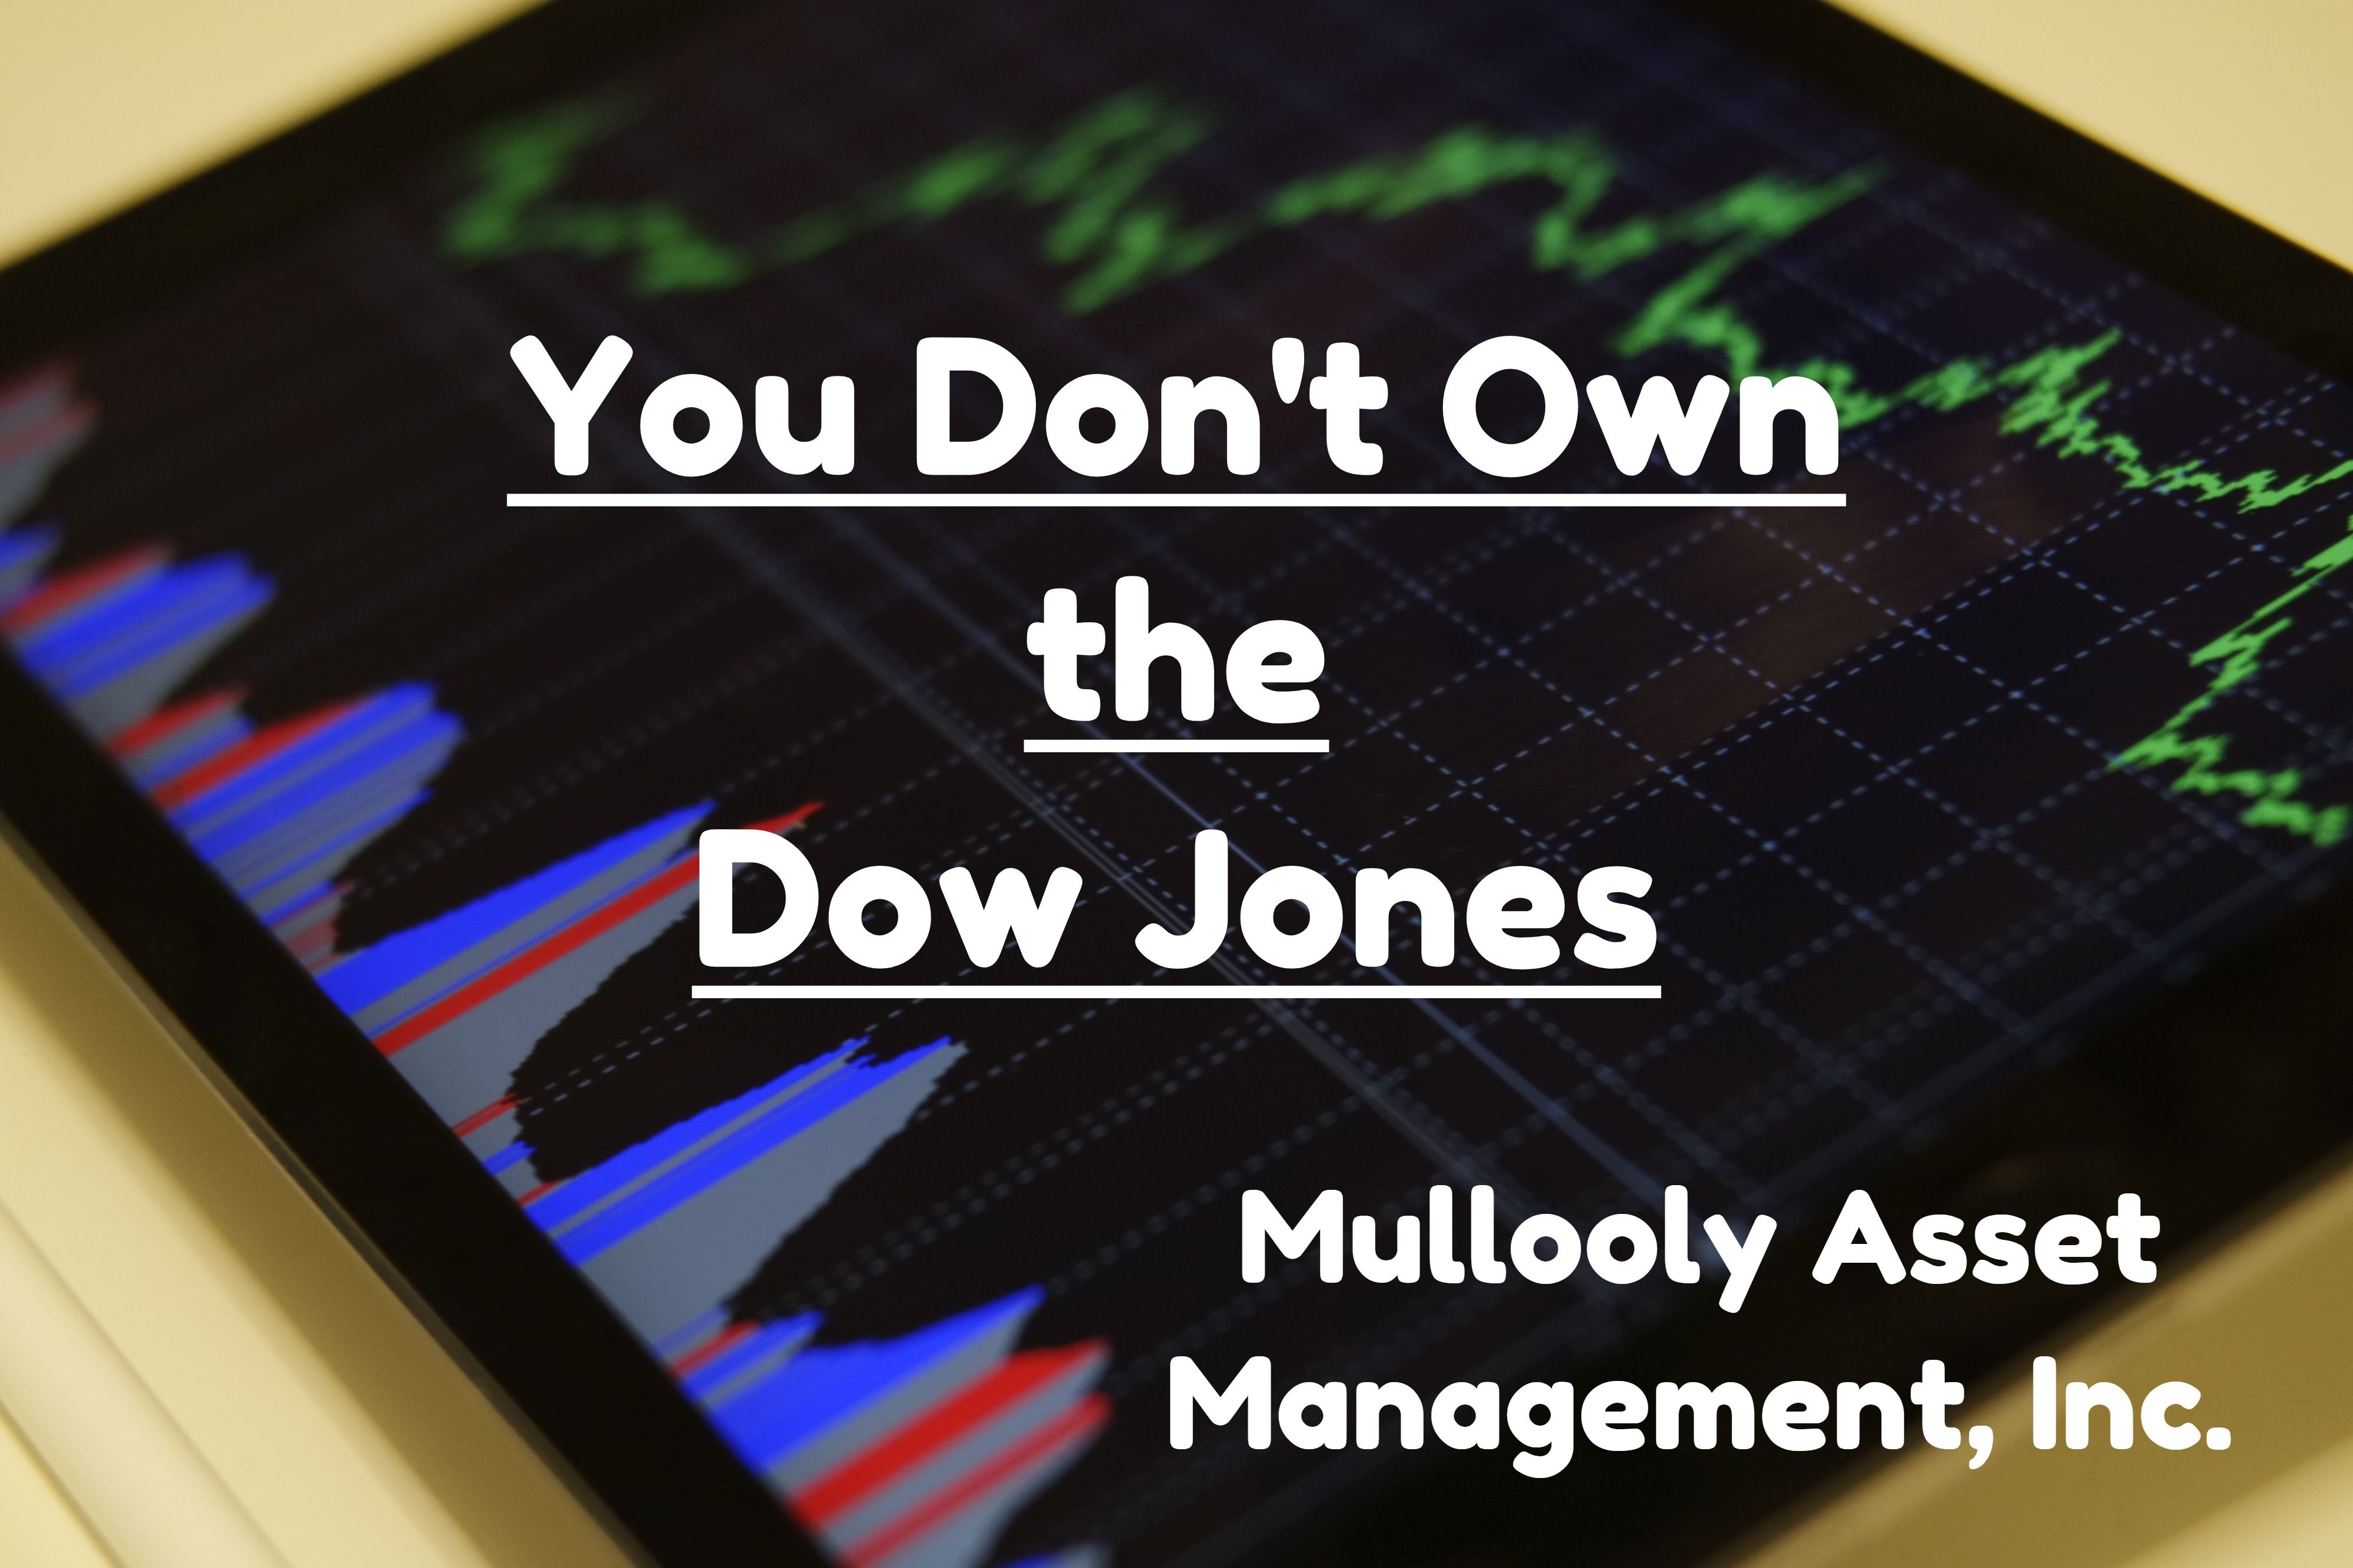 You Don't Own the Dow Jones